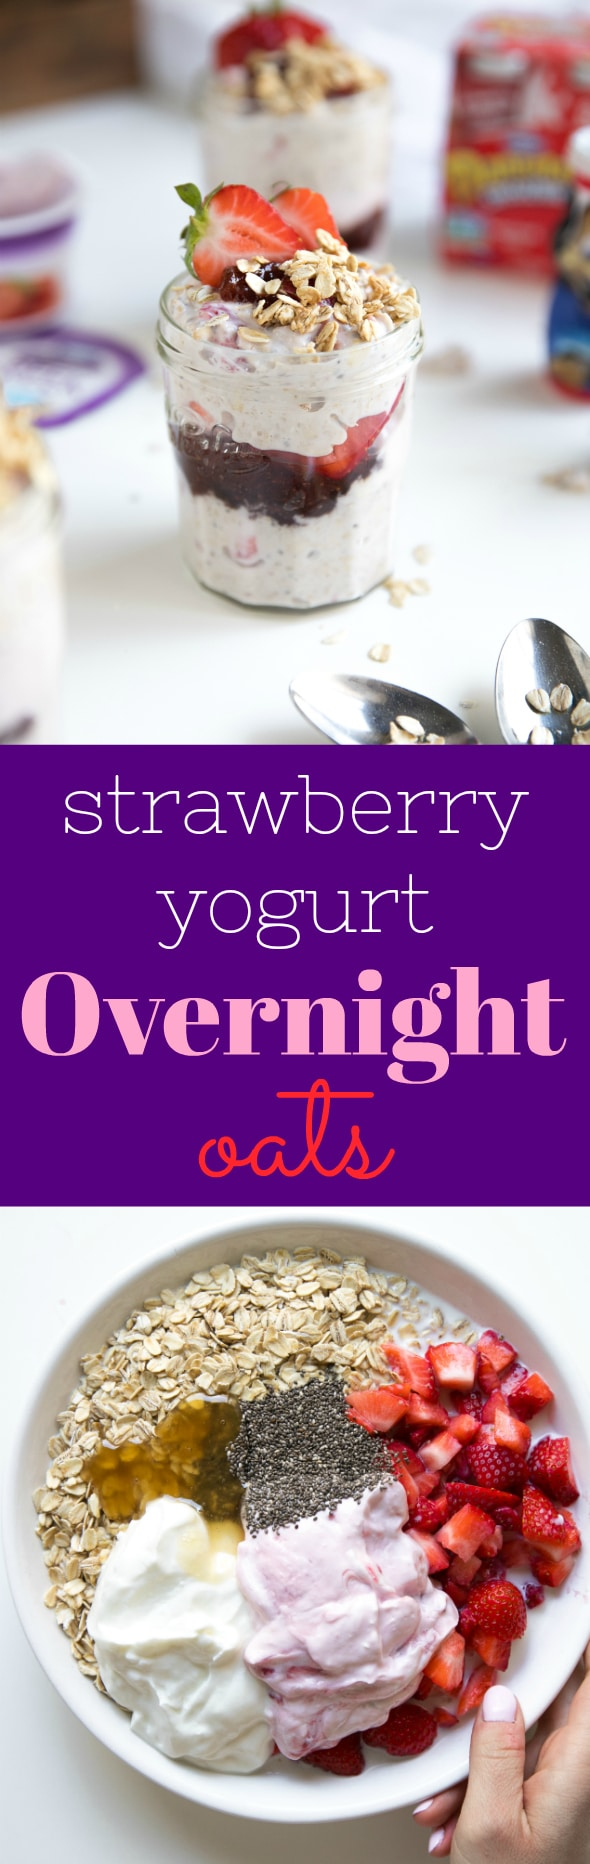 Strawberry Yogurt Overnight Oats. Healthy, delicious and loved by the whole family, these Overnight Oats with Yogurt are packed full of gluten-free rolled oats, Greek yogurt, fresh strawberries, milk, and chia seeds for an easy, grab-n-go, protein-packed breakfast!! #overnightoats #ad #breakfast #glutenfree #healthyrecipe | For this recipe and more visit, https://theforkedspoon.com